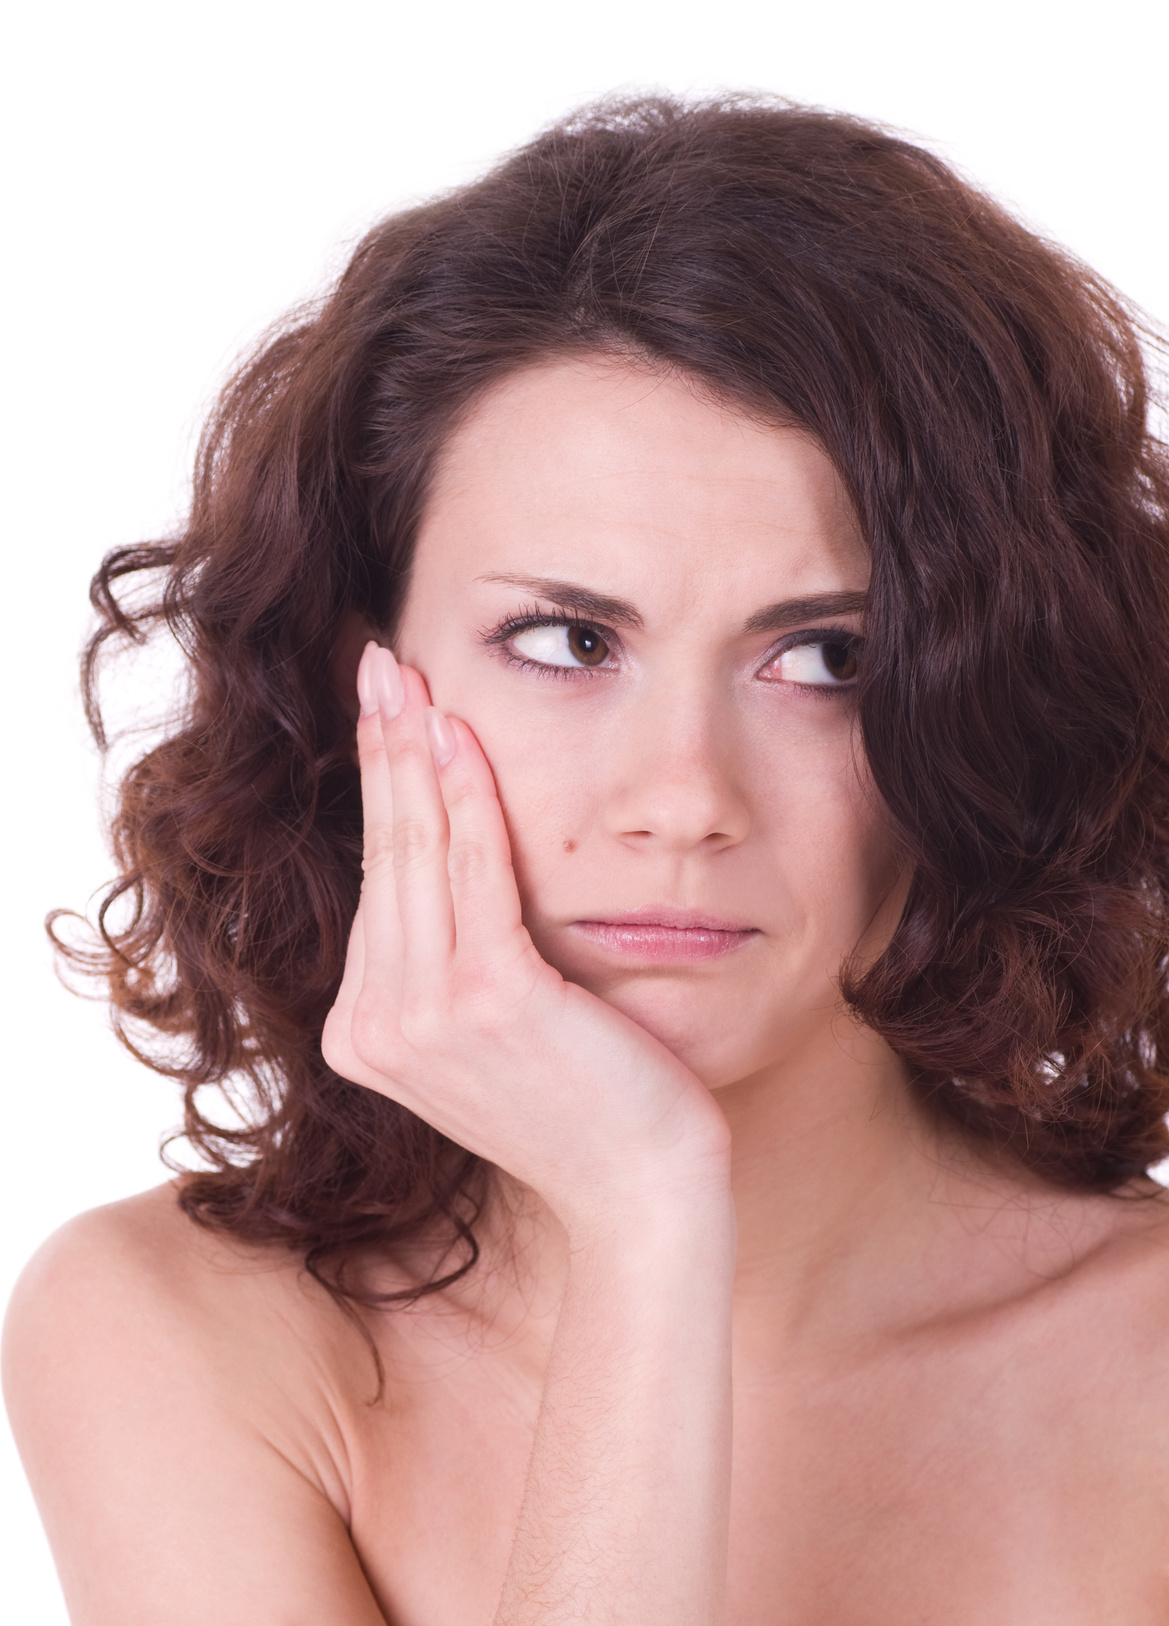 10 common causes of sensitive teeth